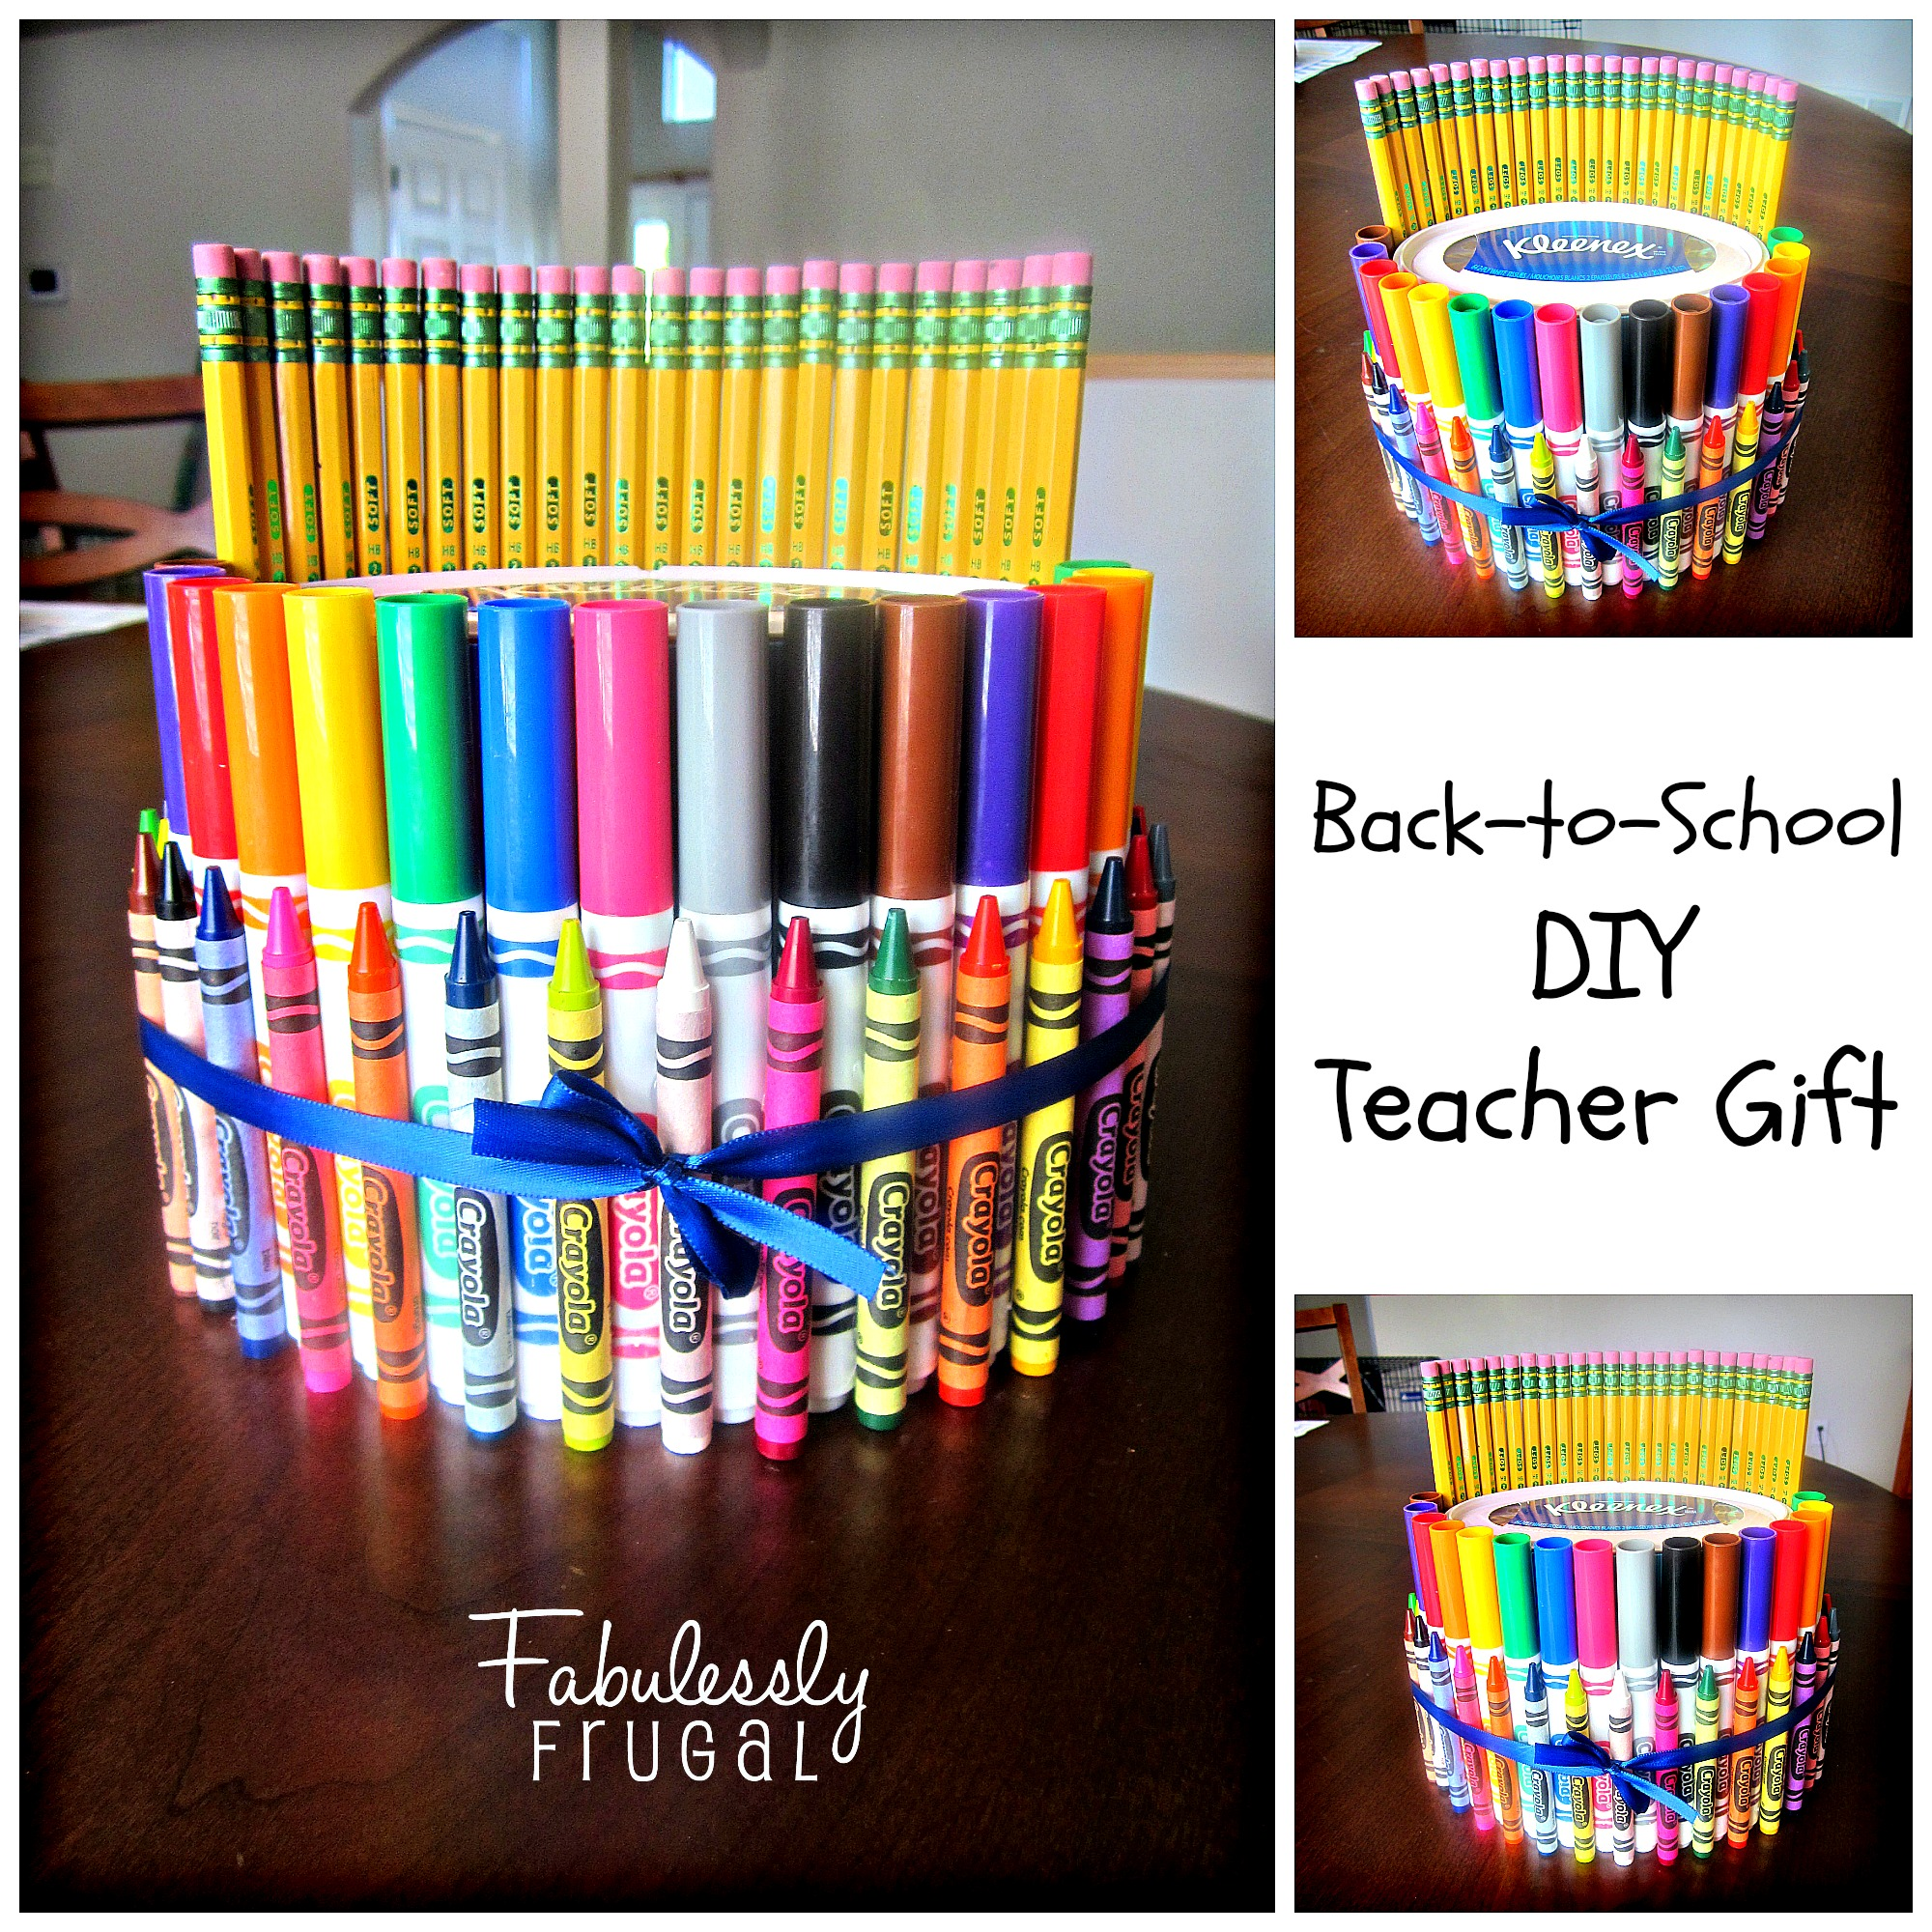 Diy teacher gift for back to school teacher gift final solutioingenieria Choice Image